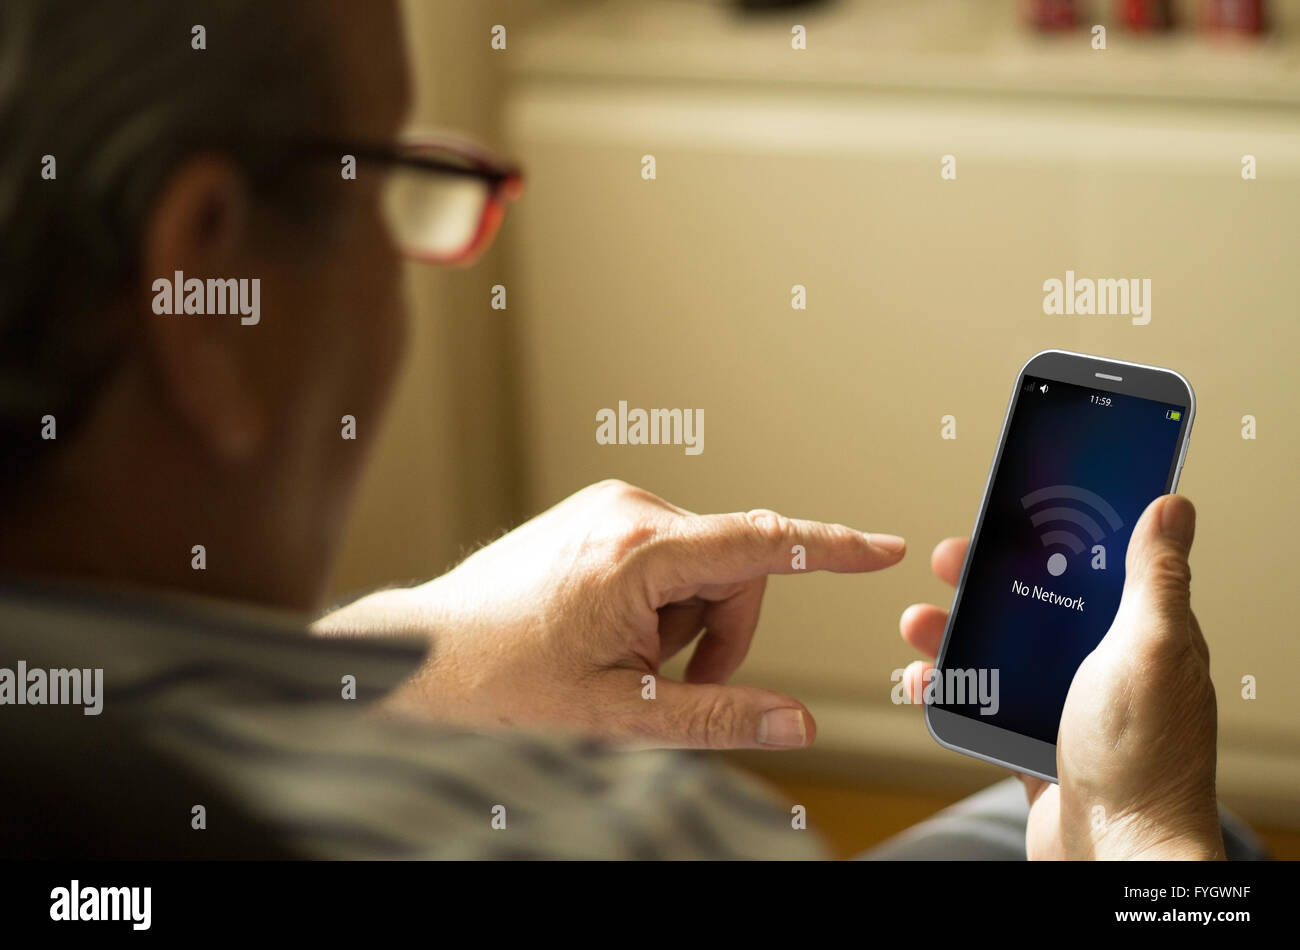 bad coverage concept: Senior man with no network screen on a 3d generated smartphone. Screen graphics are made up. - Stock Image